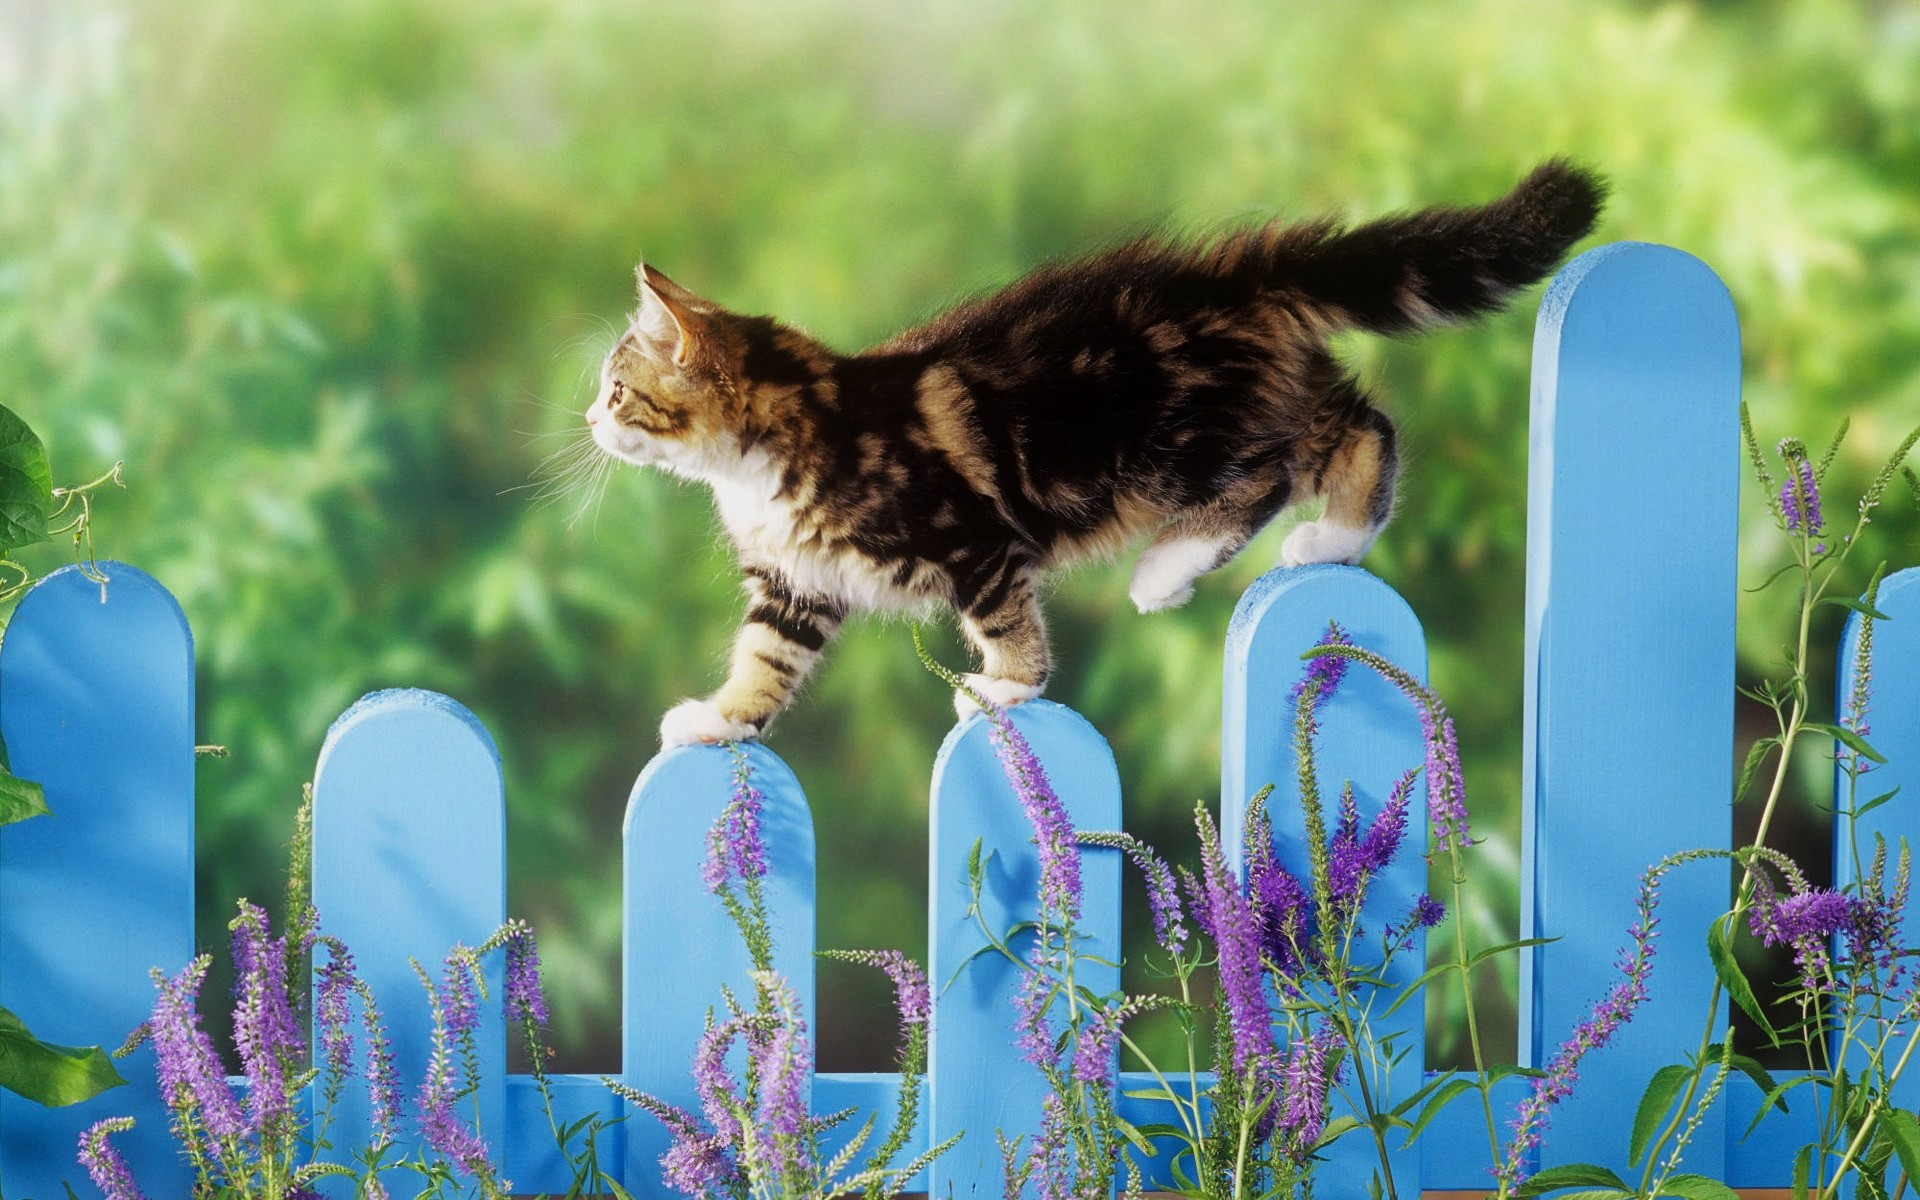 cats nature grass cute outdoors flower cat little summer animal garden